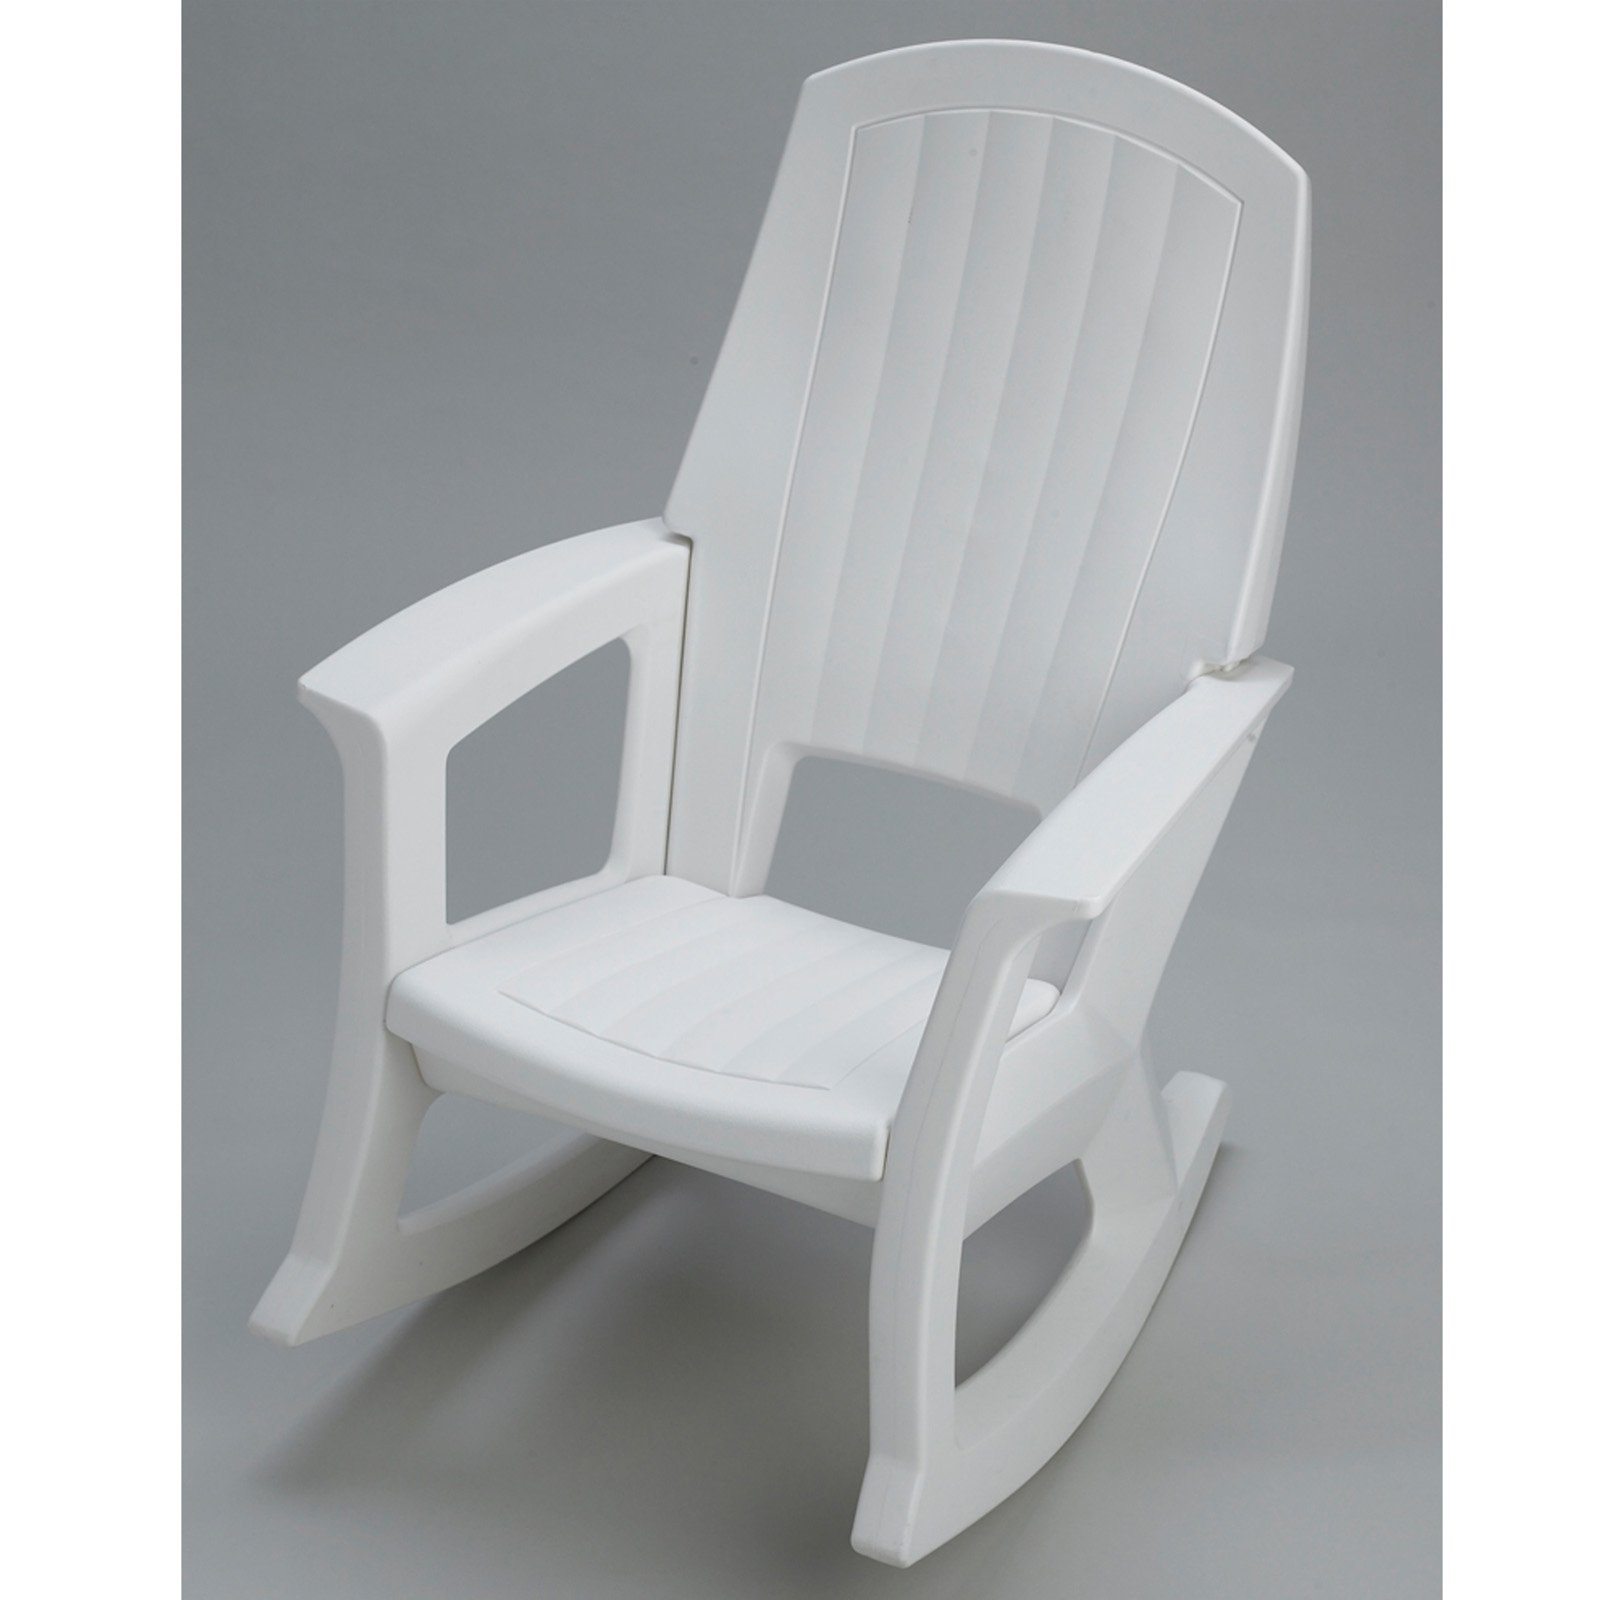 Resin Rocking Chair Semco Recycled Plastic Rocking Chair Ebay